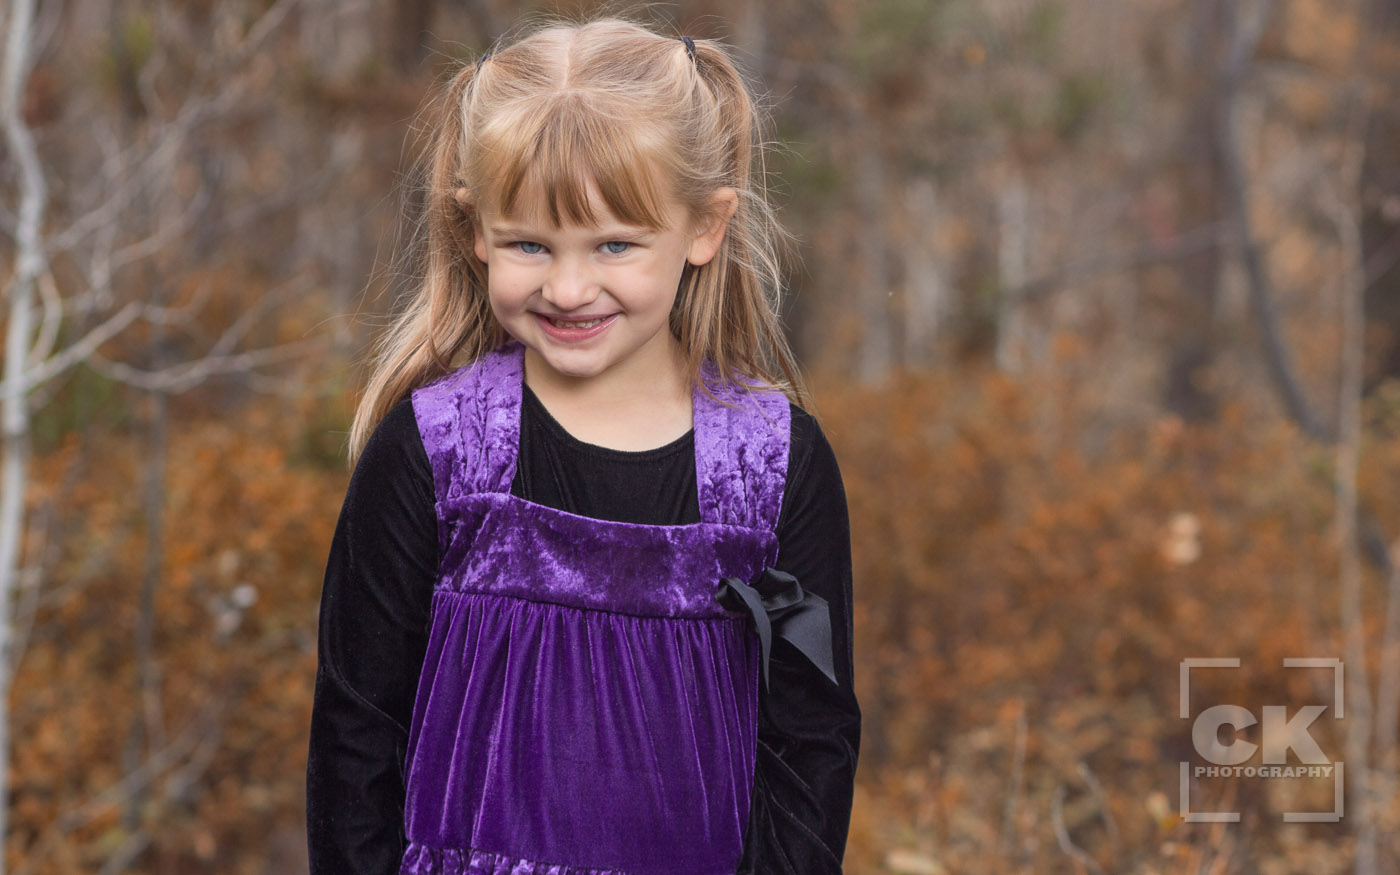 Chris Kryzanek Photography children - girl fall colors